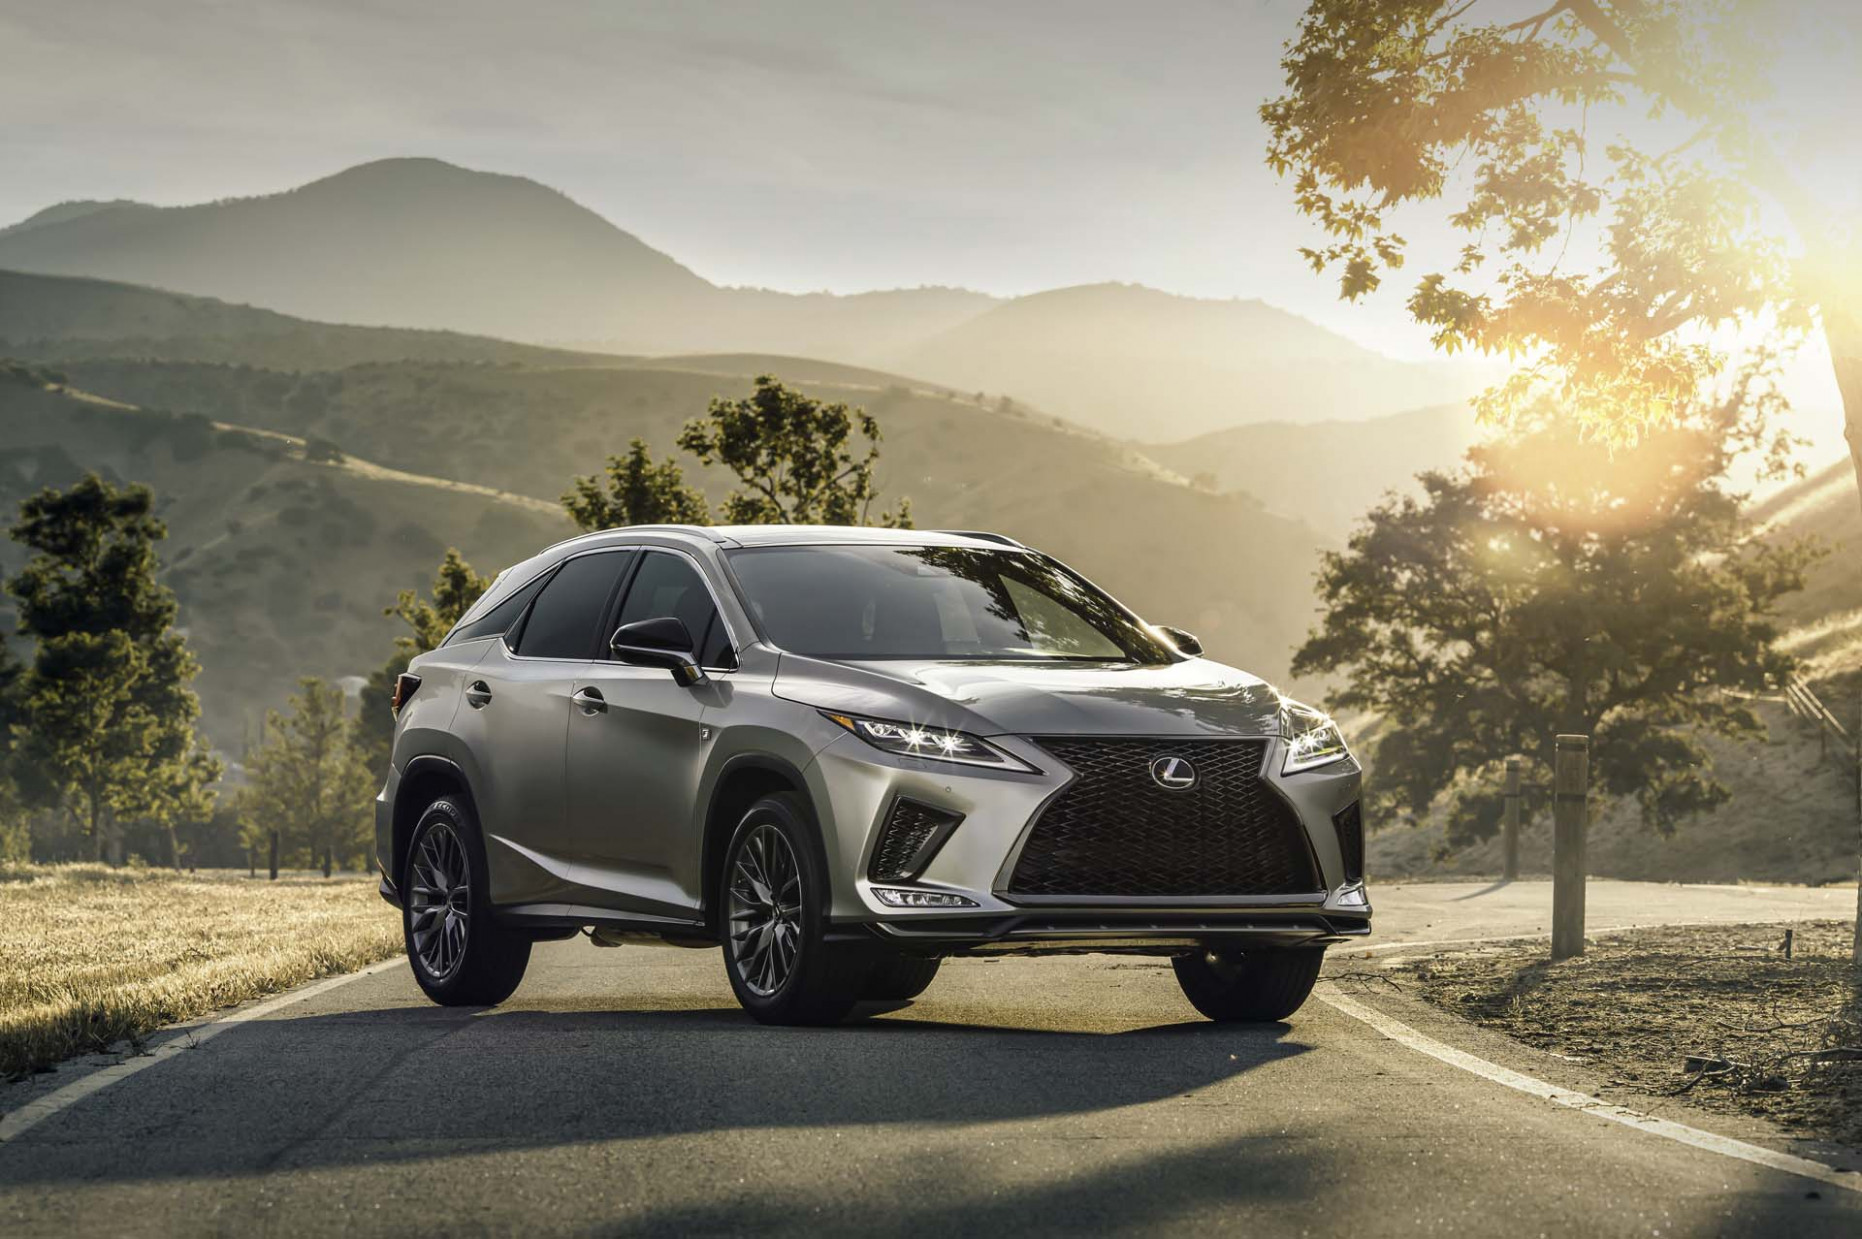 Review update: The 8 Lexus RX 8 AWD still answers the call